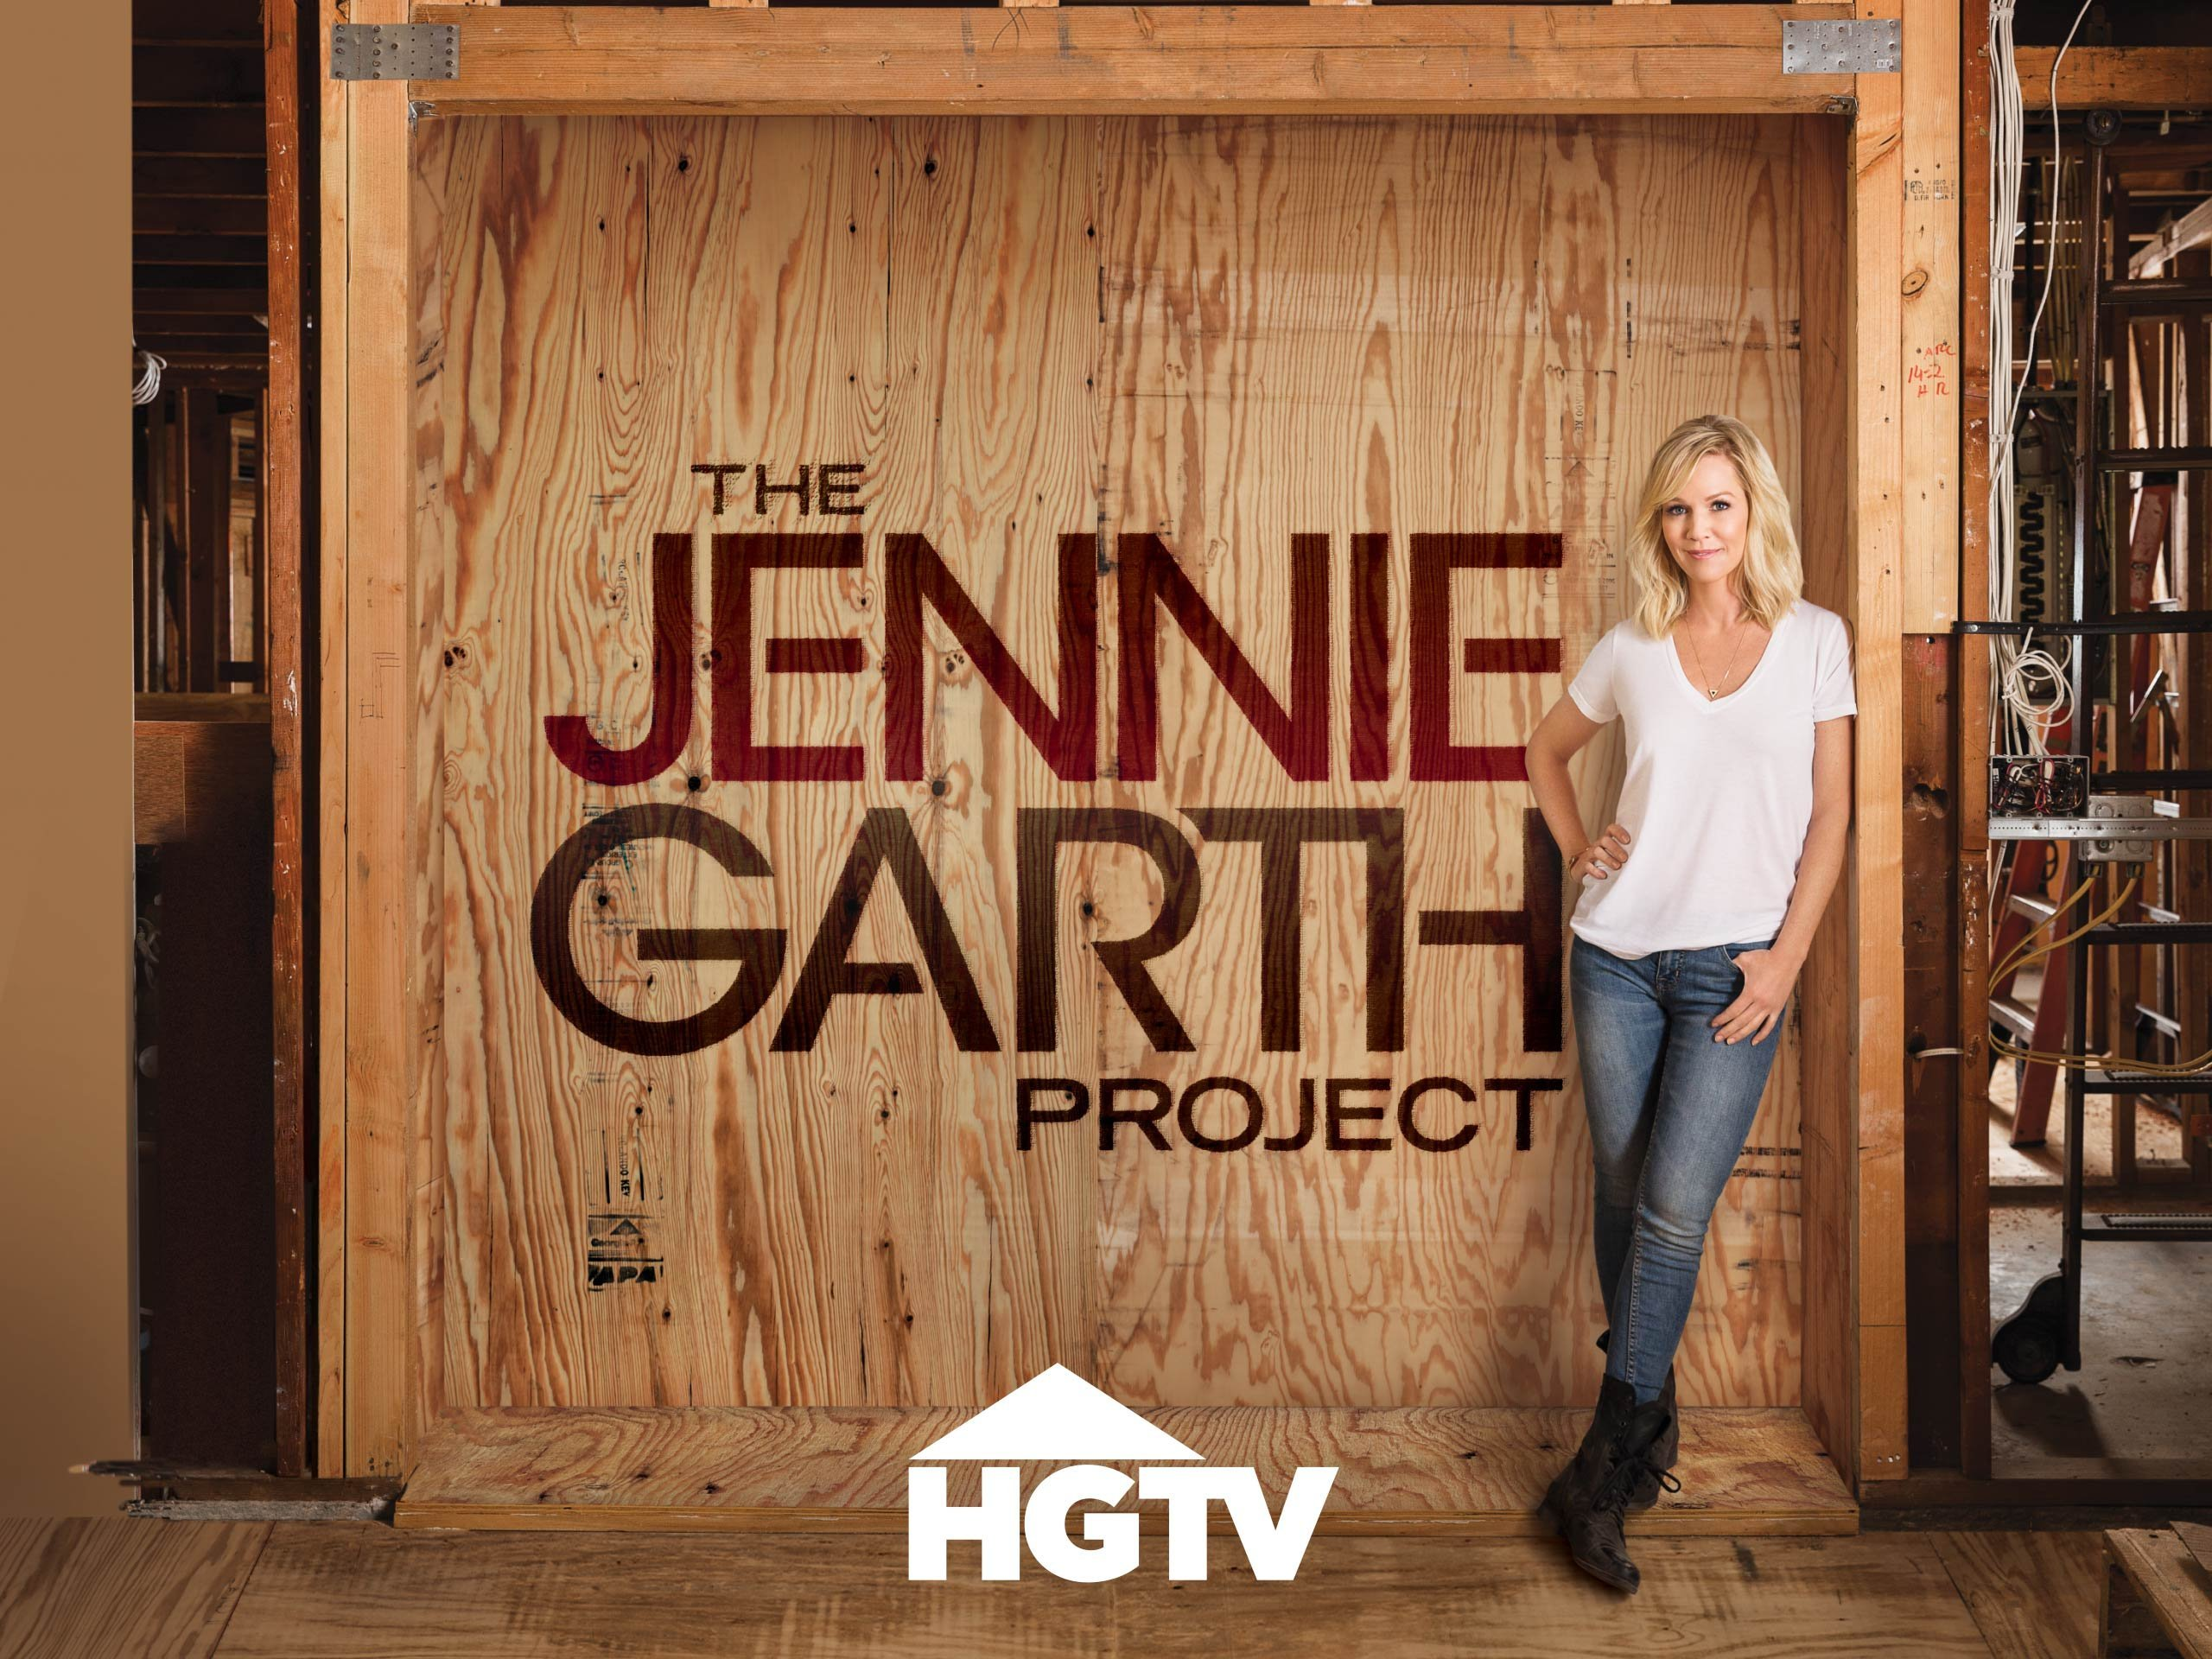 Jennie garth dating hgtv